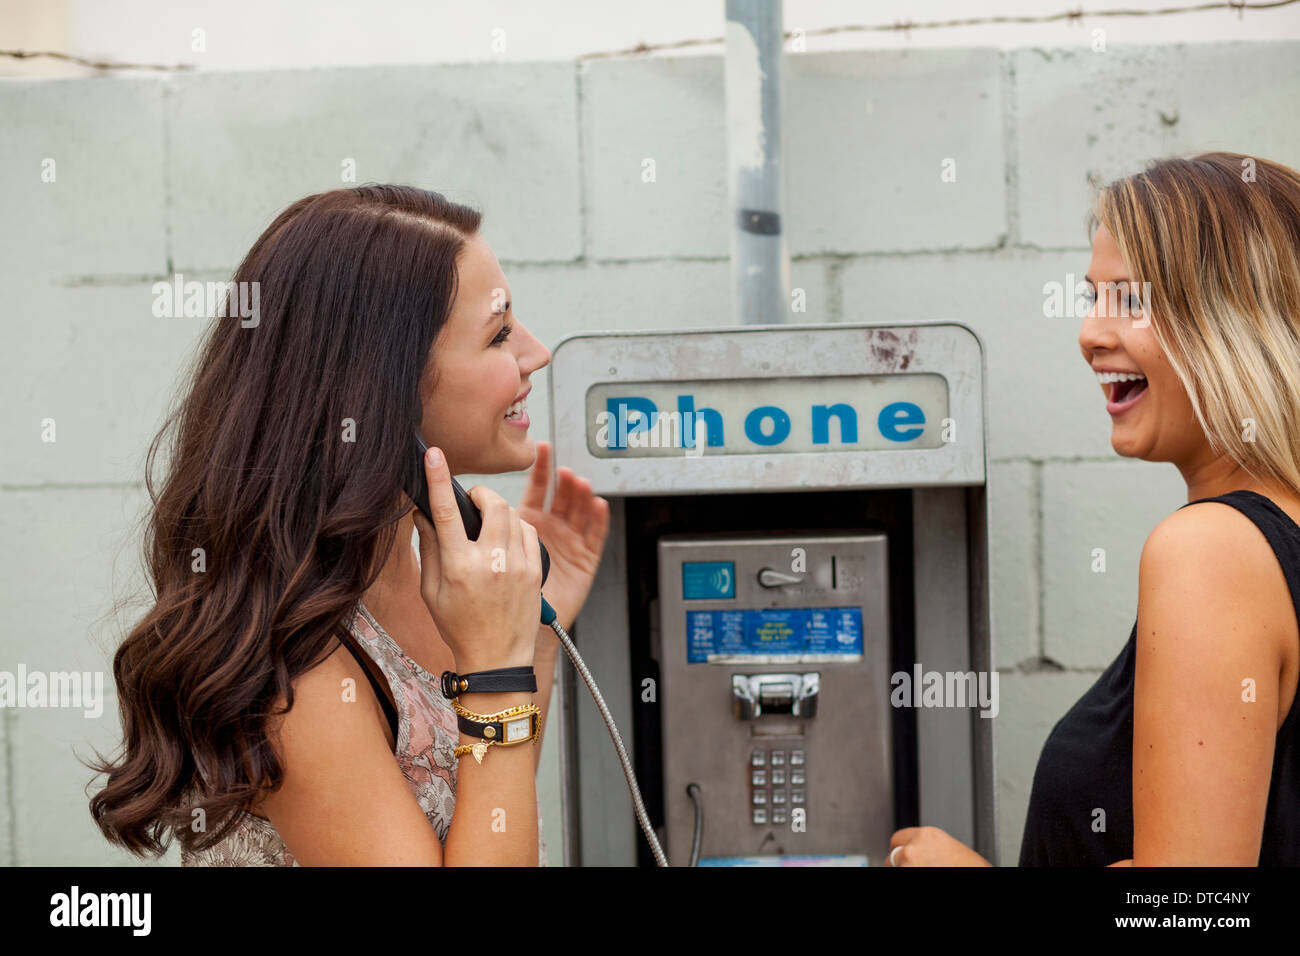 Young women using payphone laughing - Stock Image